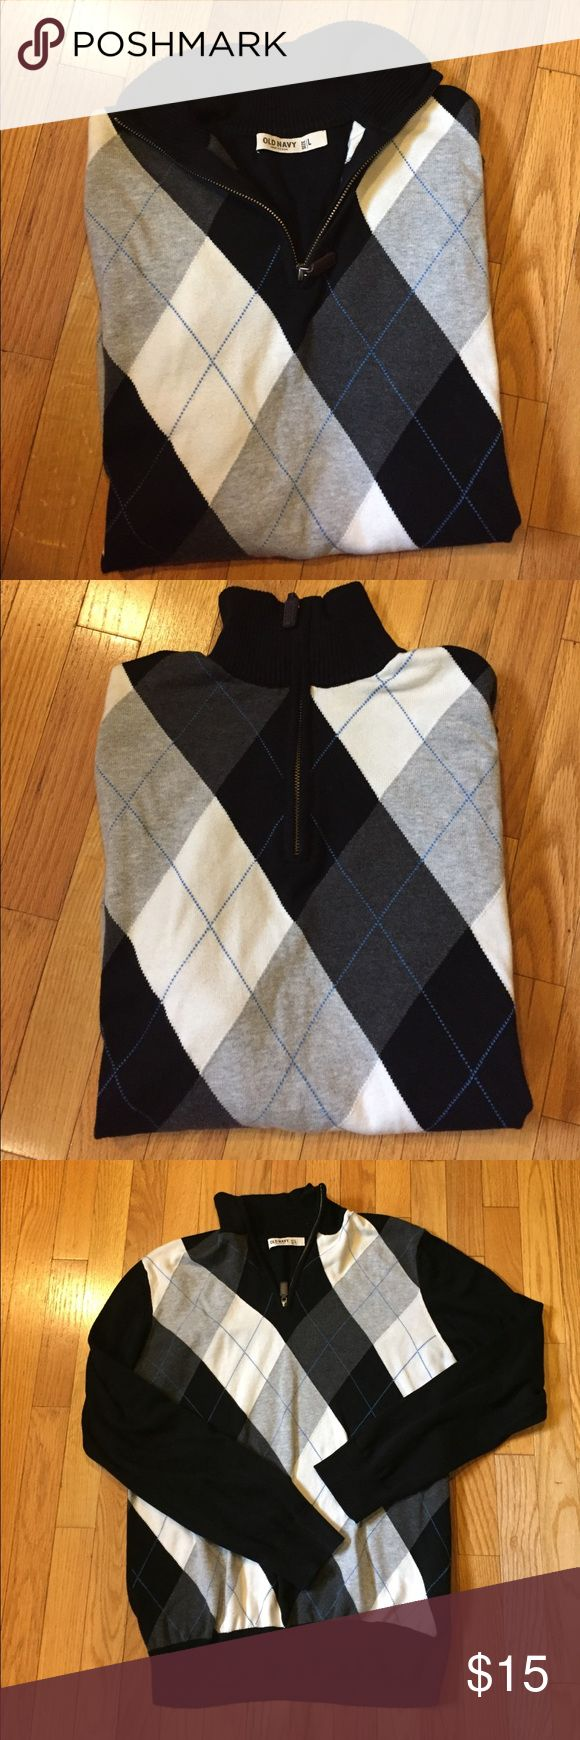 Old Navy Men's Pullover Zip Sweater L Old Navy Men's Pullover Zip Sweater; size Large; half zip at neck; argyle design on front/plain back; EUC; 100% cotton; lightweight Old Navy Sweaters V-Neck